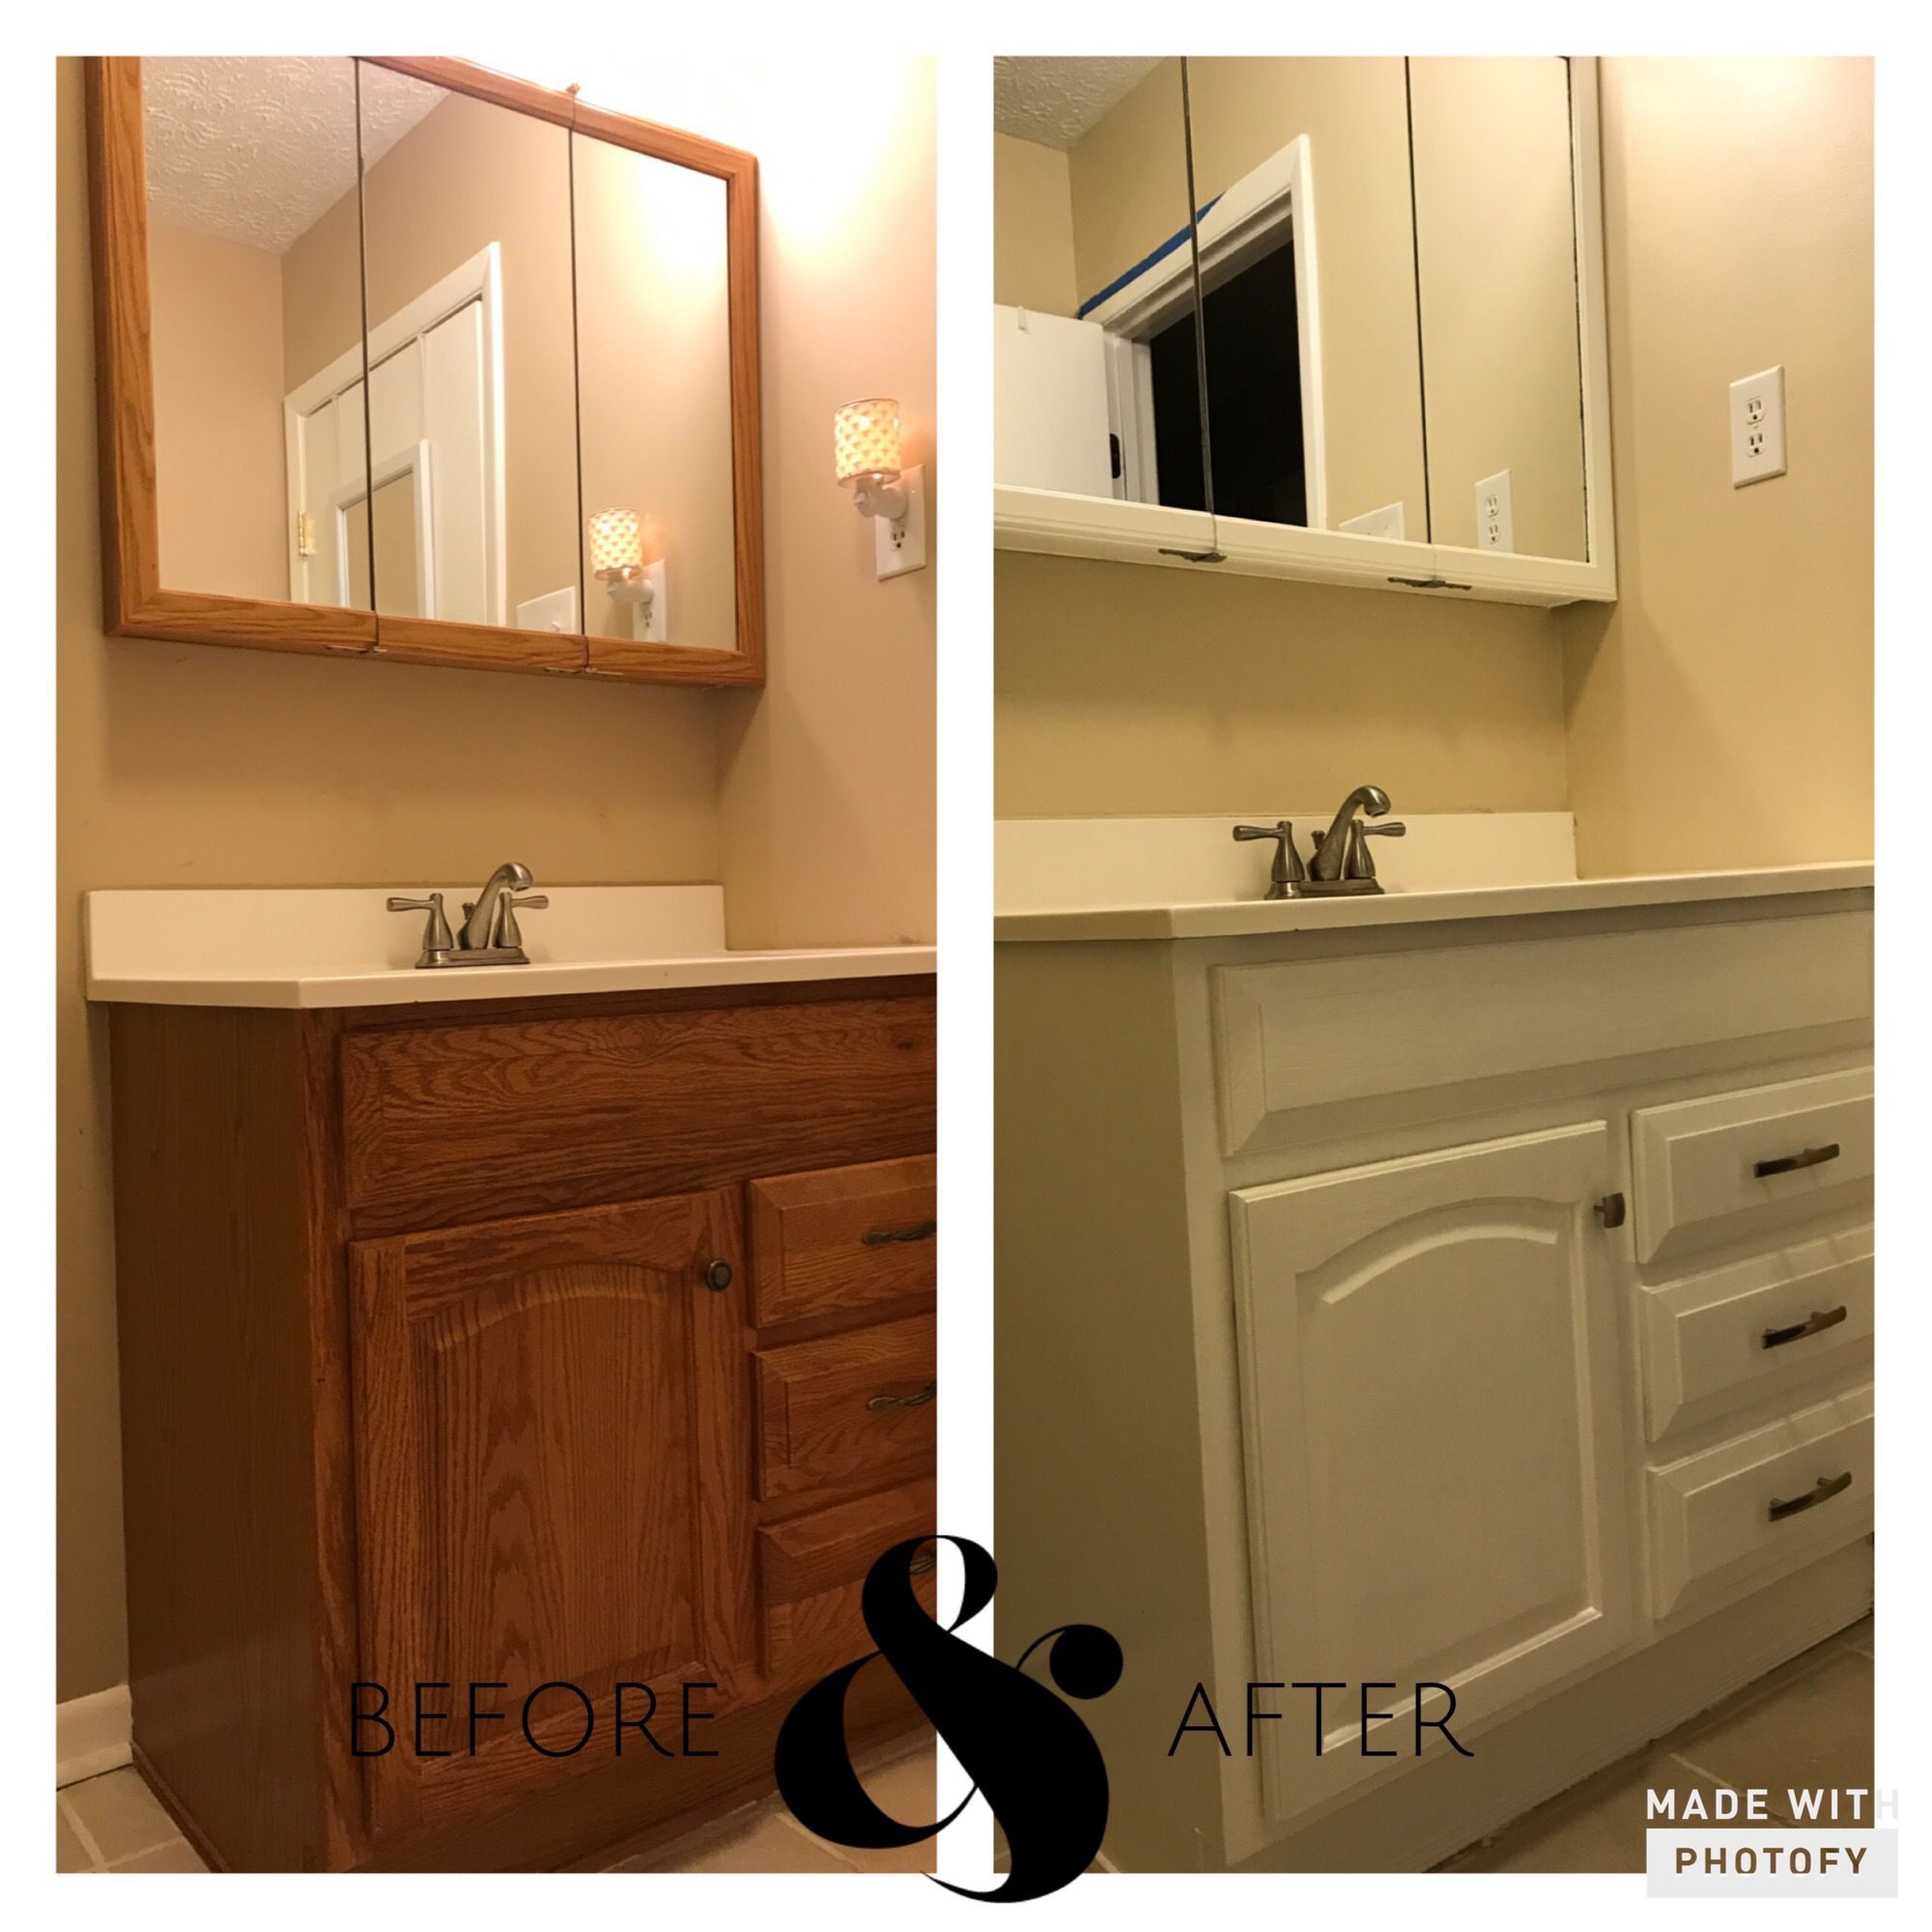 Bathroom Remodel. No More Oak Or Brass! Used Cabinet